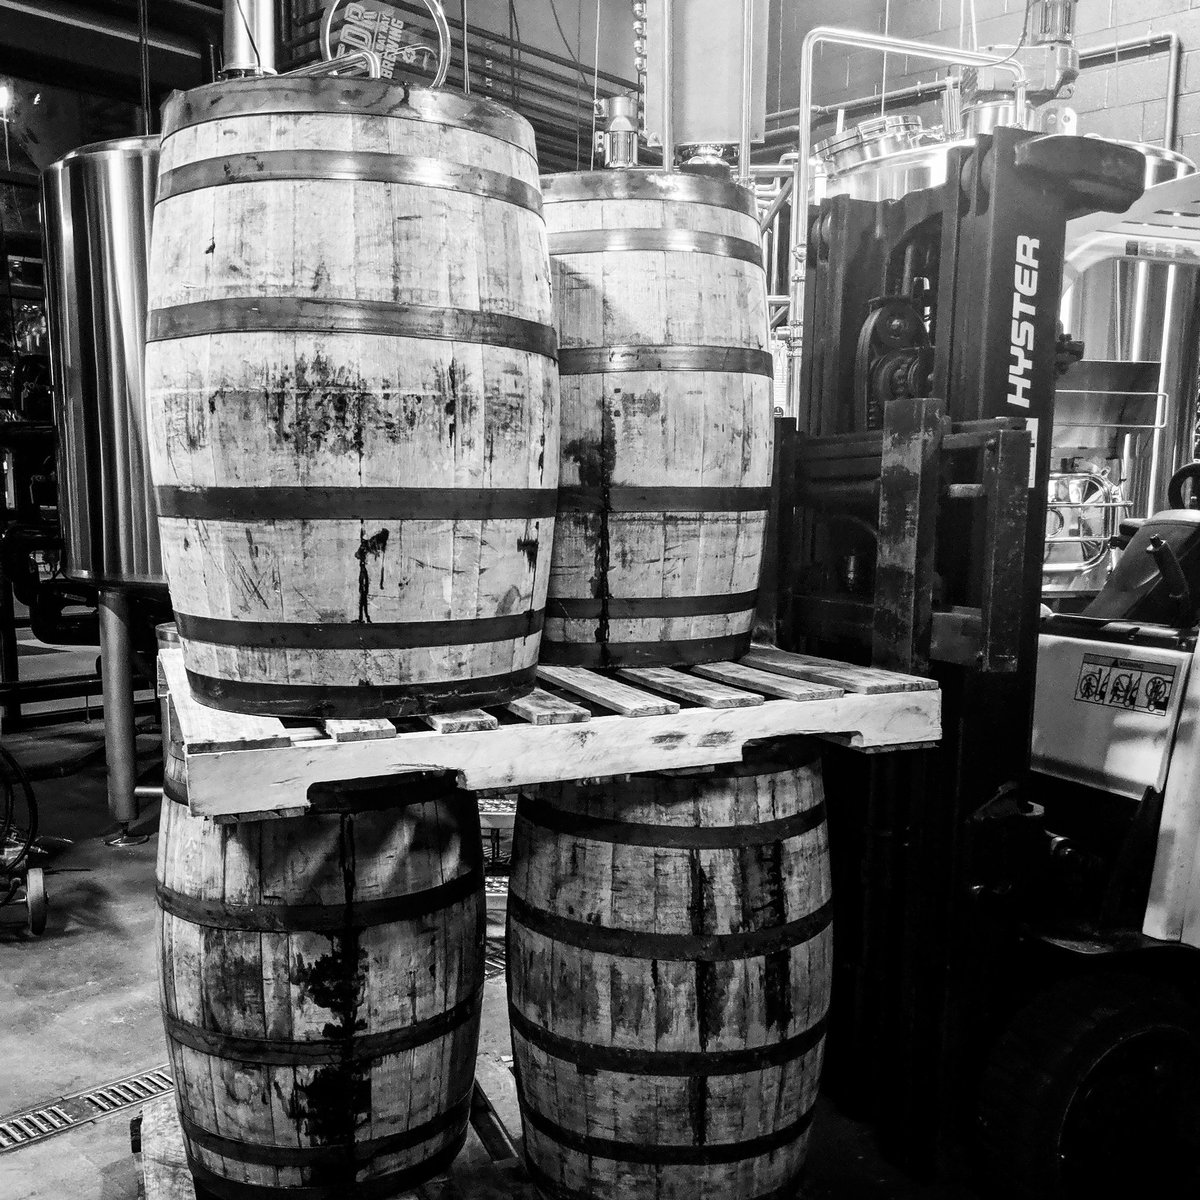 Today's a good day! @HotelTangoIndy Rum & Whiskey barrels are in. Stay tuned to find out what we're filling these with. #DrinkLocal #DrinkIN